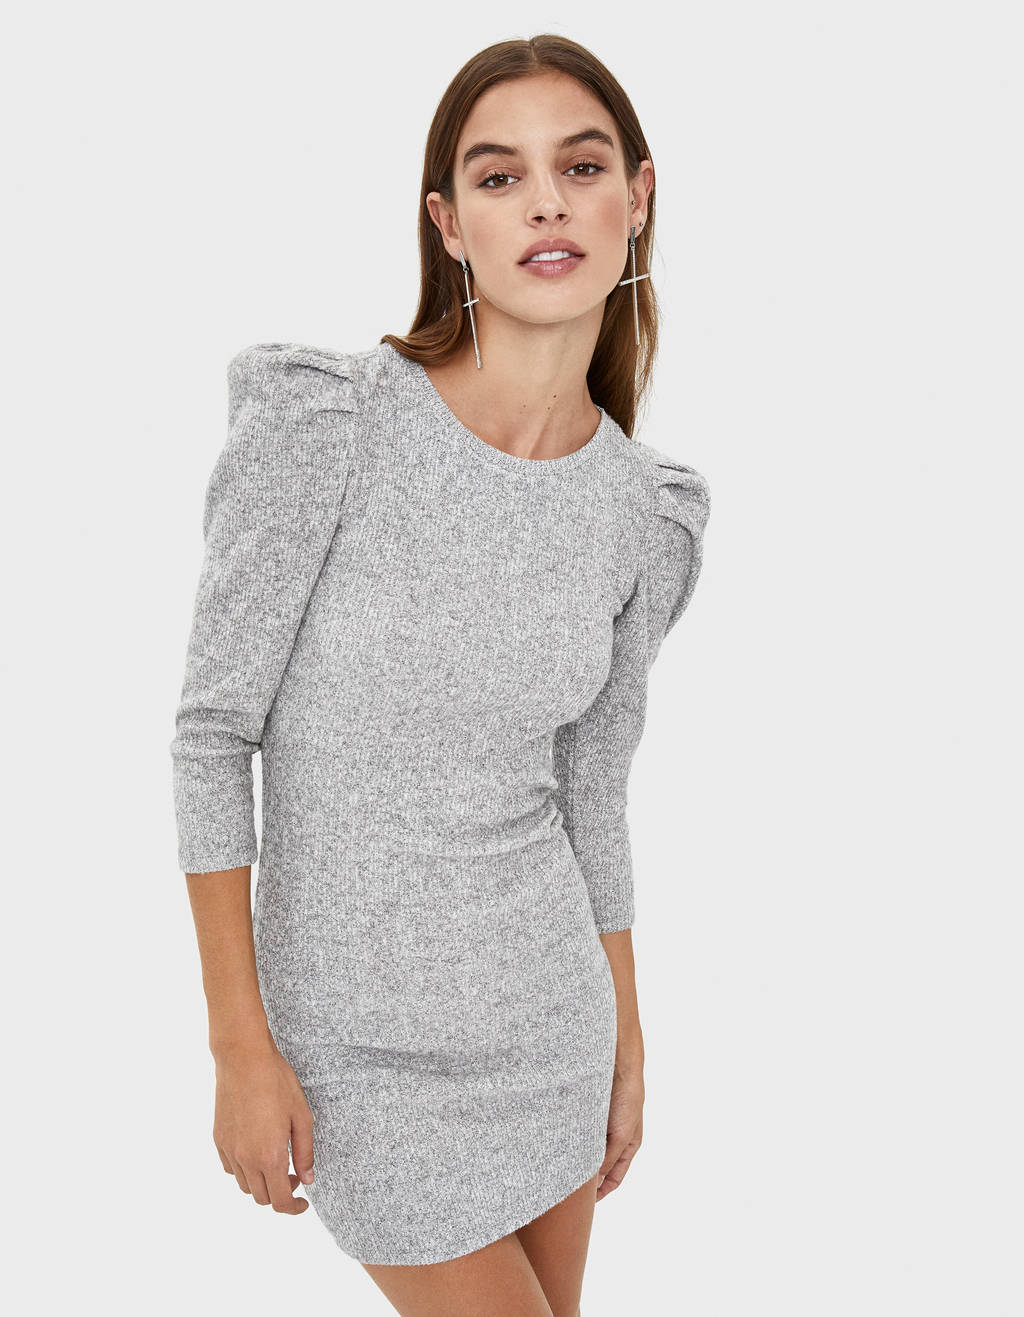 huge discount d42b6 15486 Vestiti donna - Autunno 2019 | Bershka